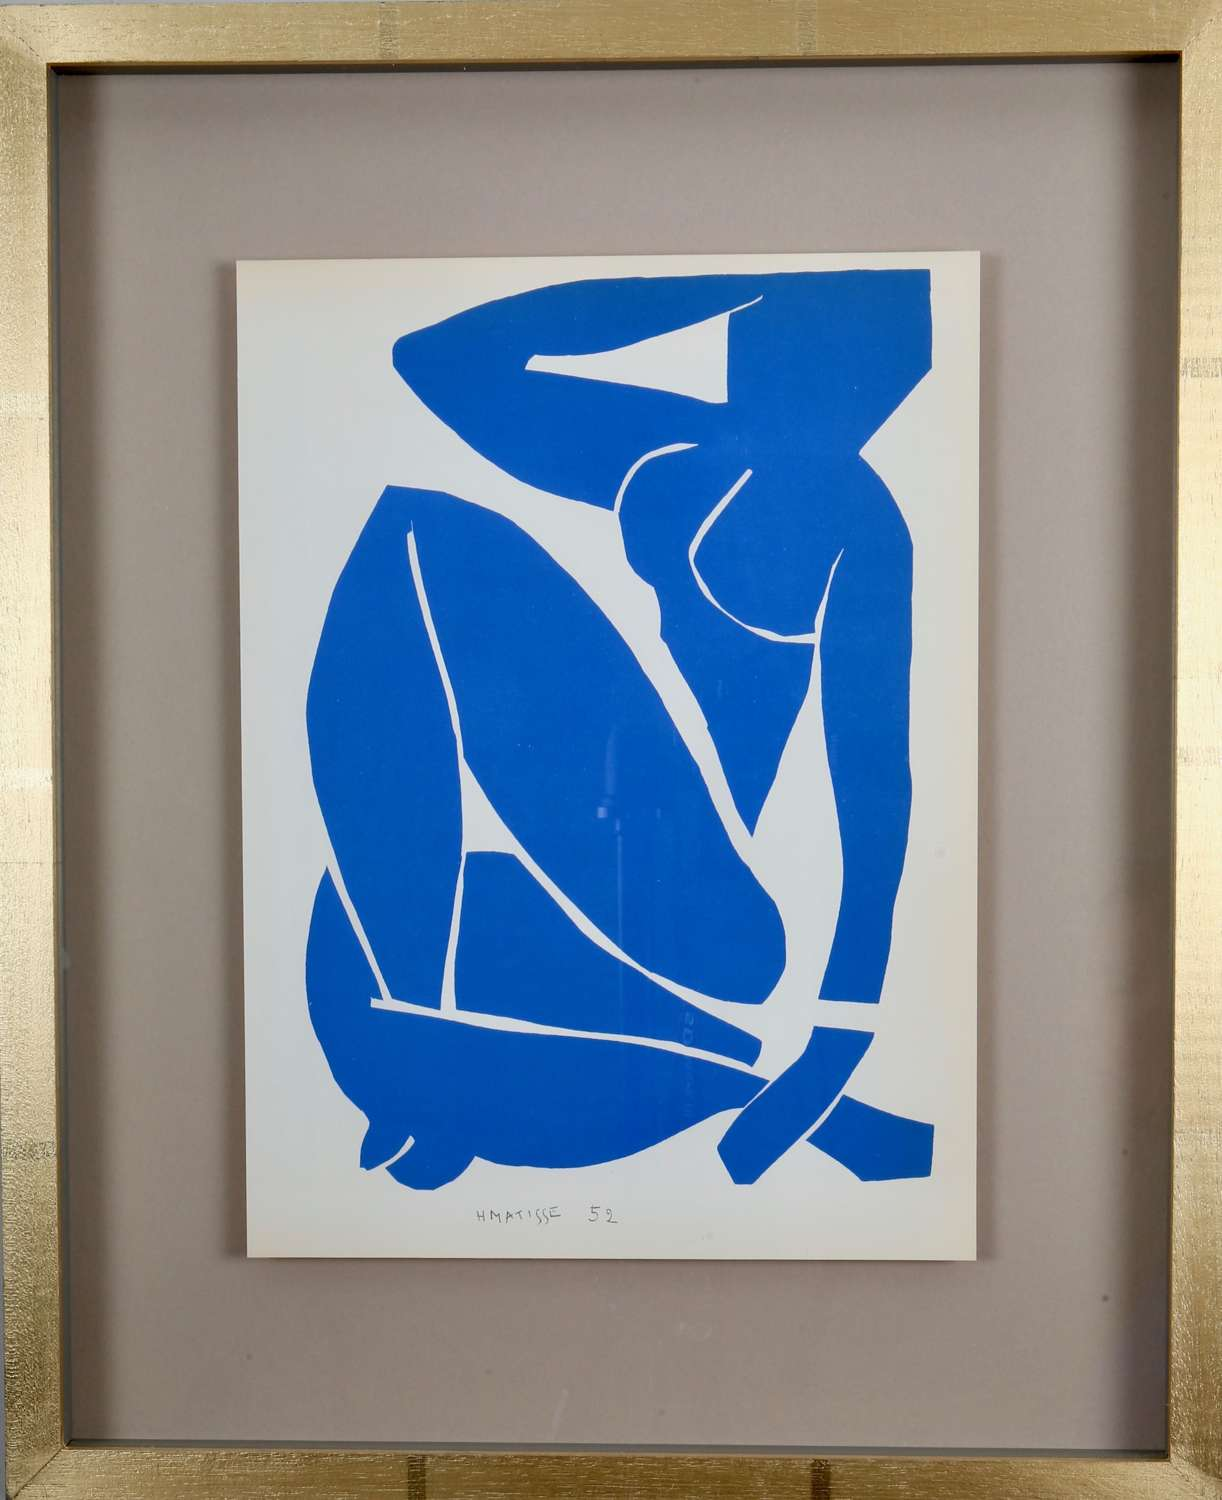 Henri Matisse. Colour Lithographs after the Cut-Outs, 1958.